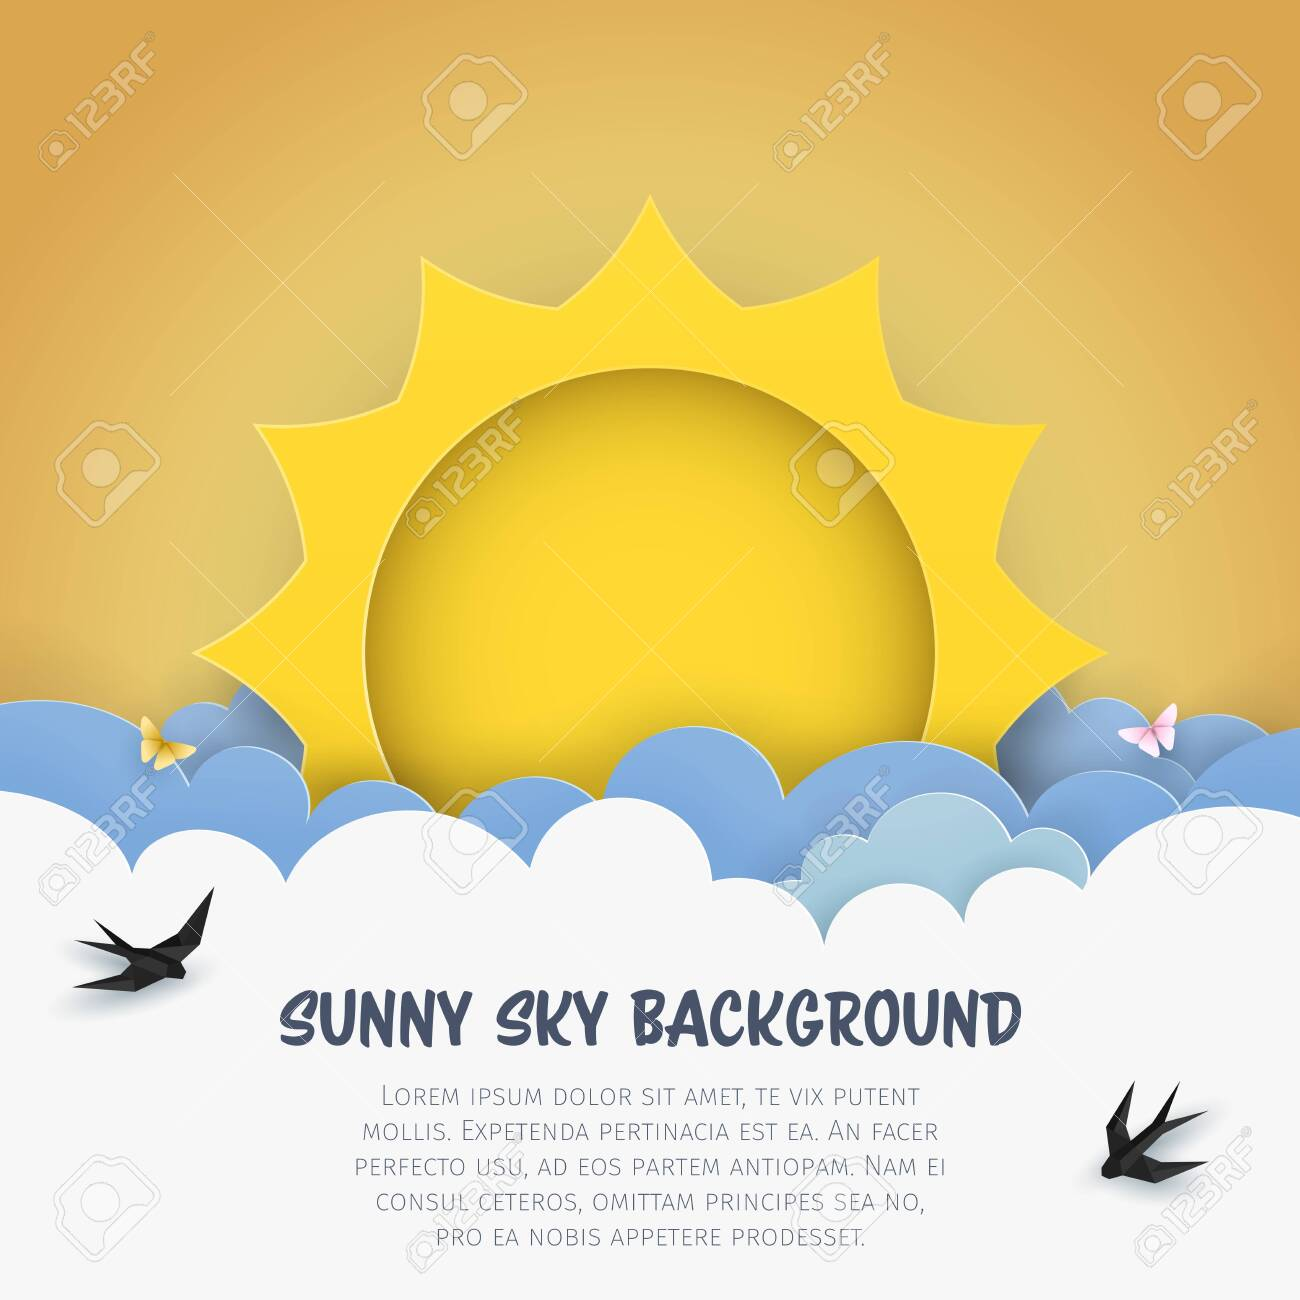 Cartoon Cloudscape Background With Sun Clouds Flying Birds Royalty Free Cliparts Vectors And Stock Illustration Image 121649319